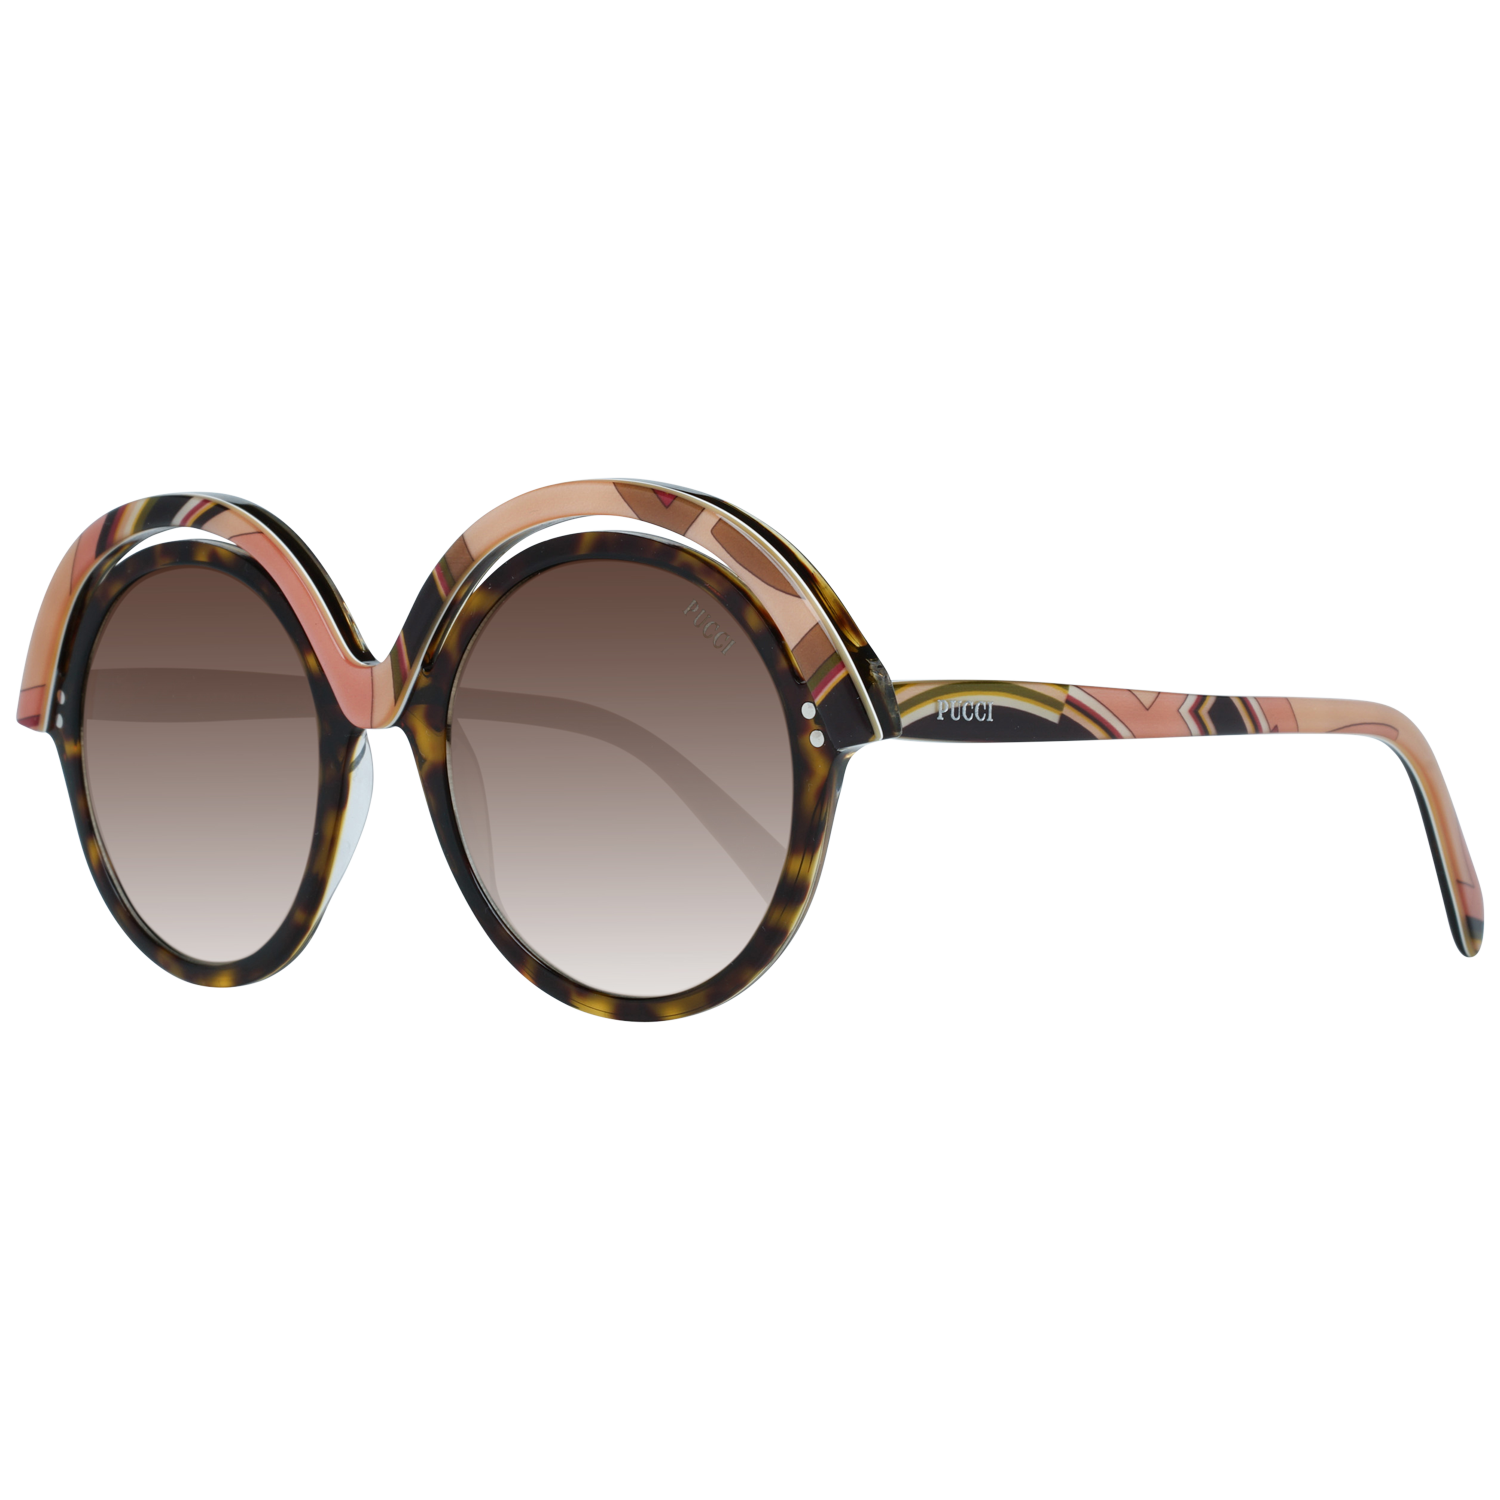 Emilio Pucci Sunglasses EP0065 56F 53 Women Multicolor